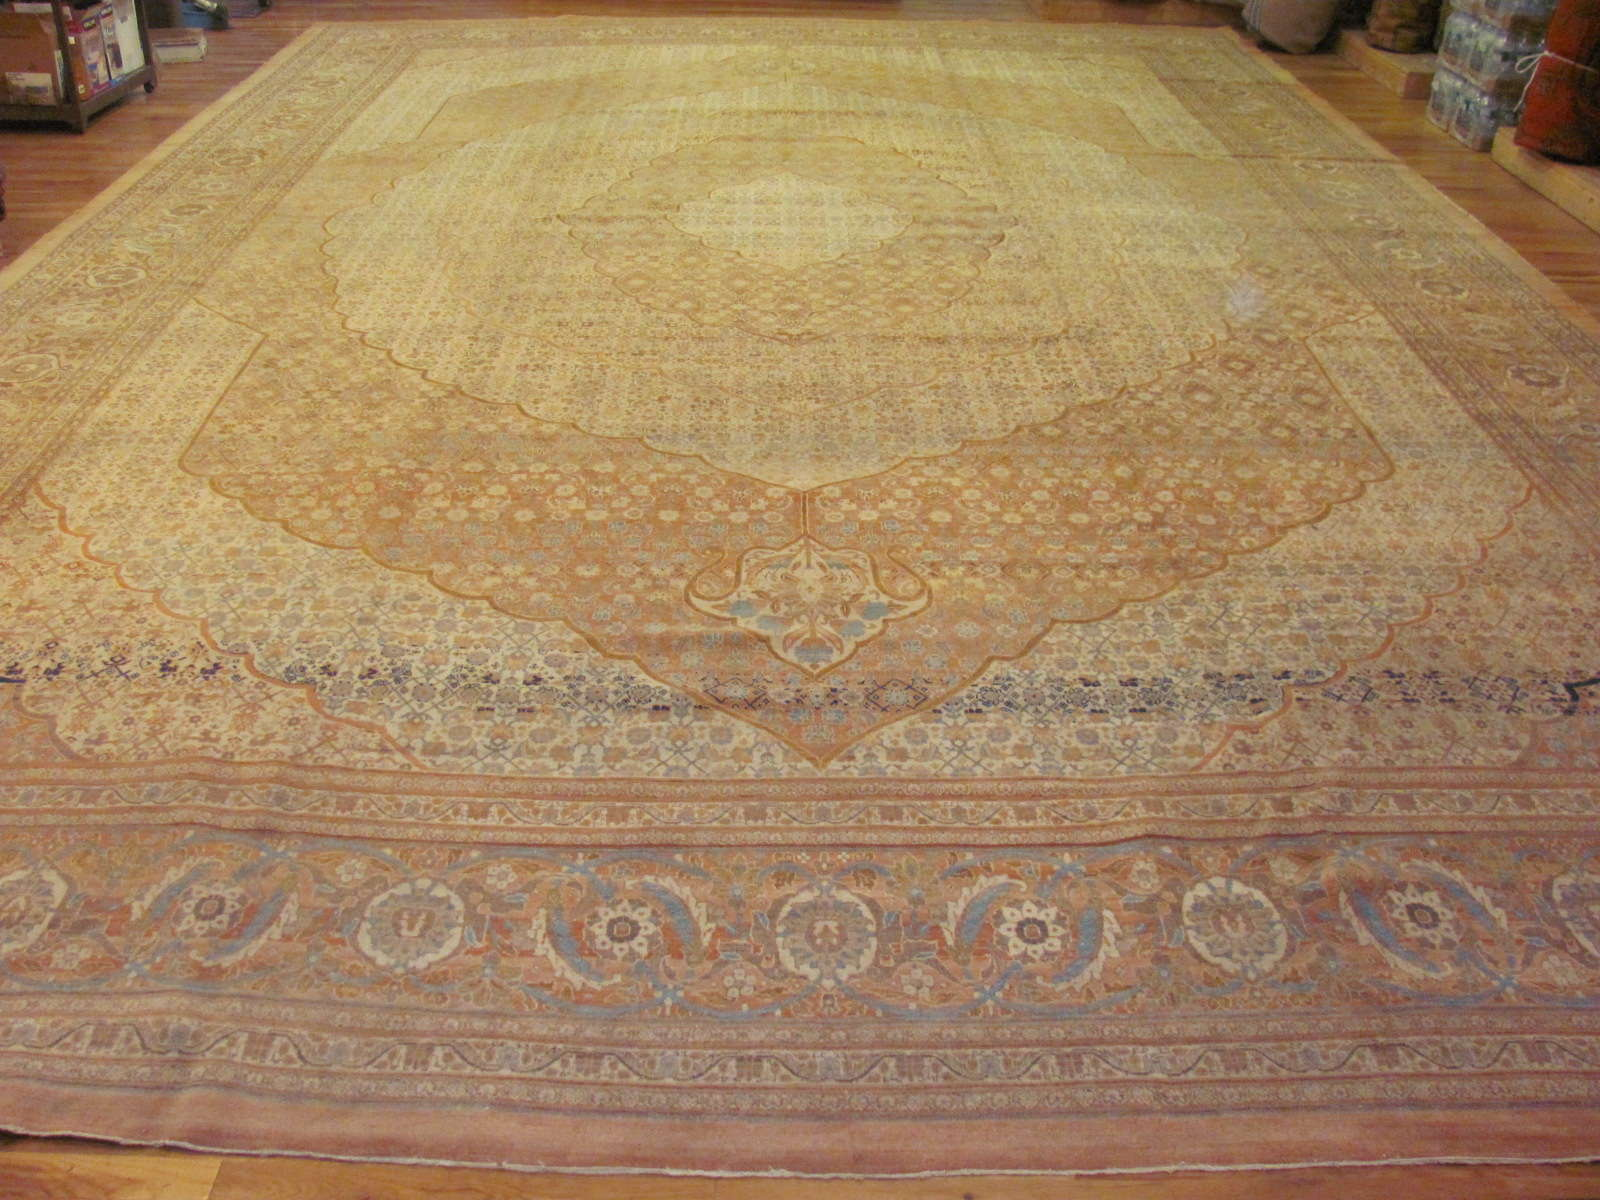 Tabriz Carpet | Persia | Handmade | Antique, Circa 1910